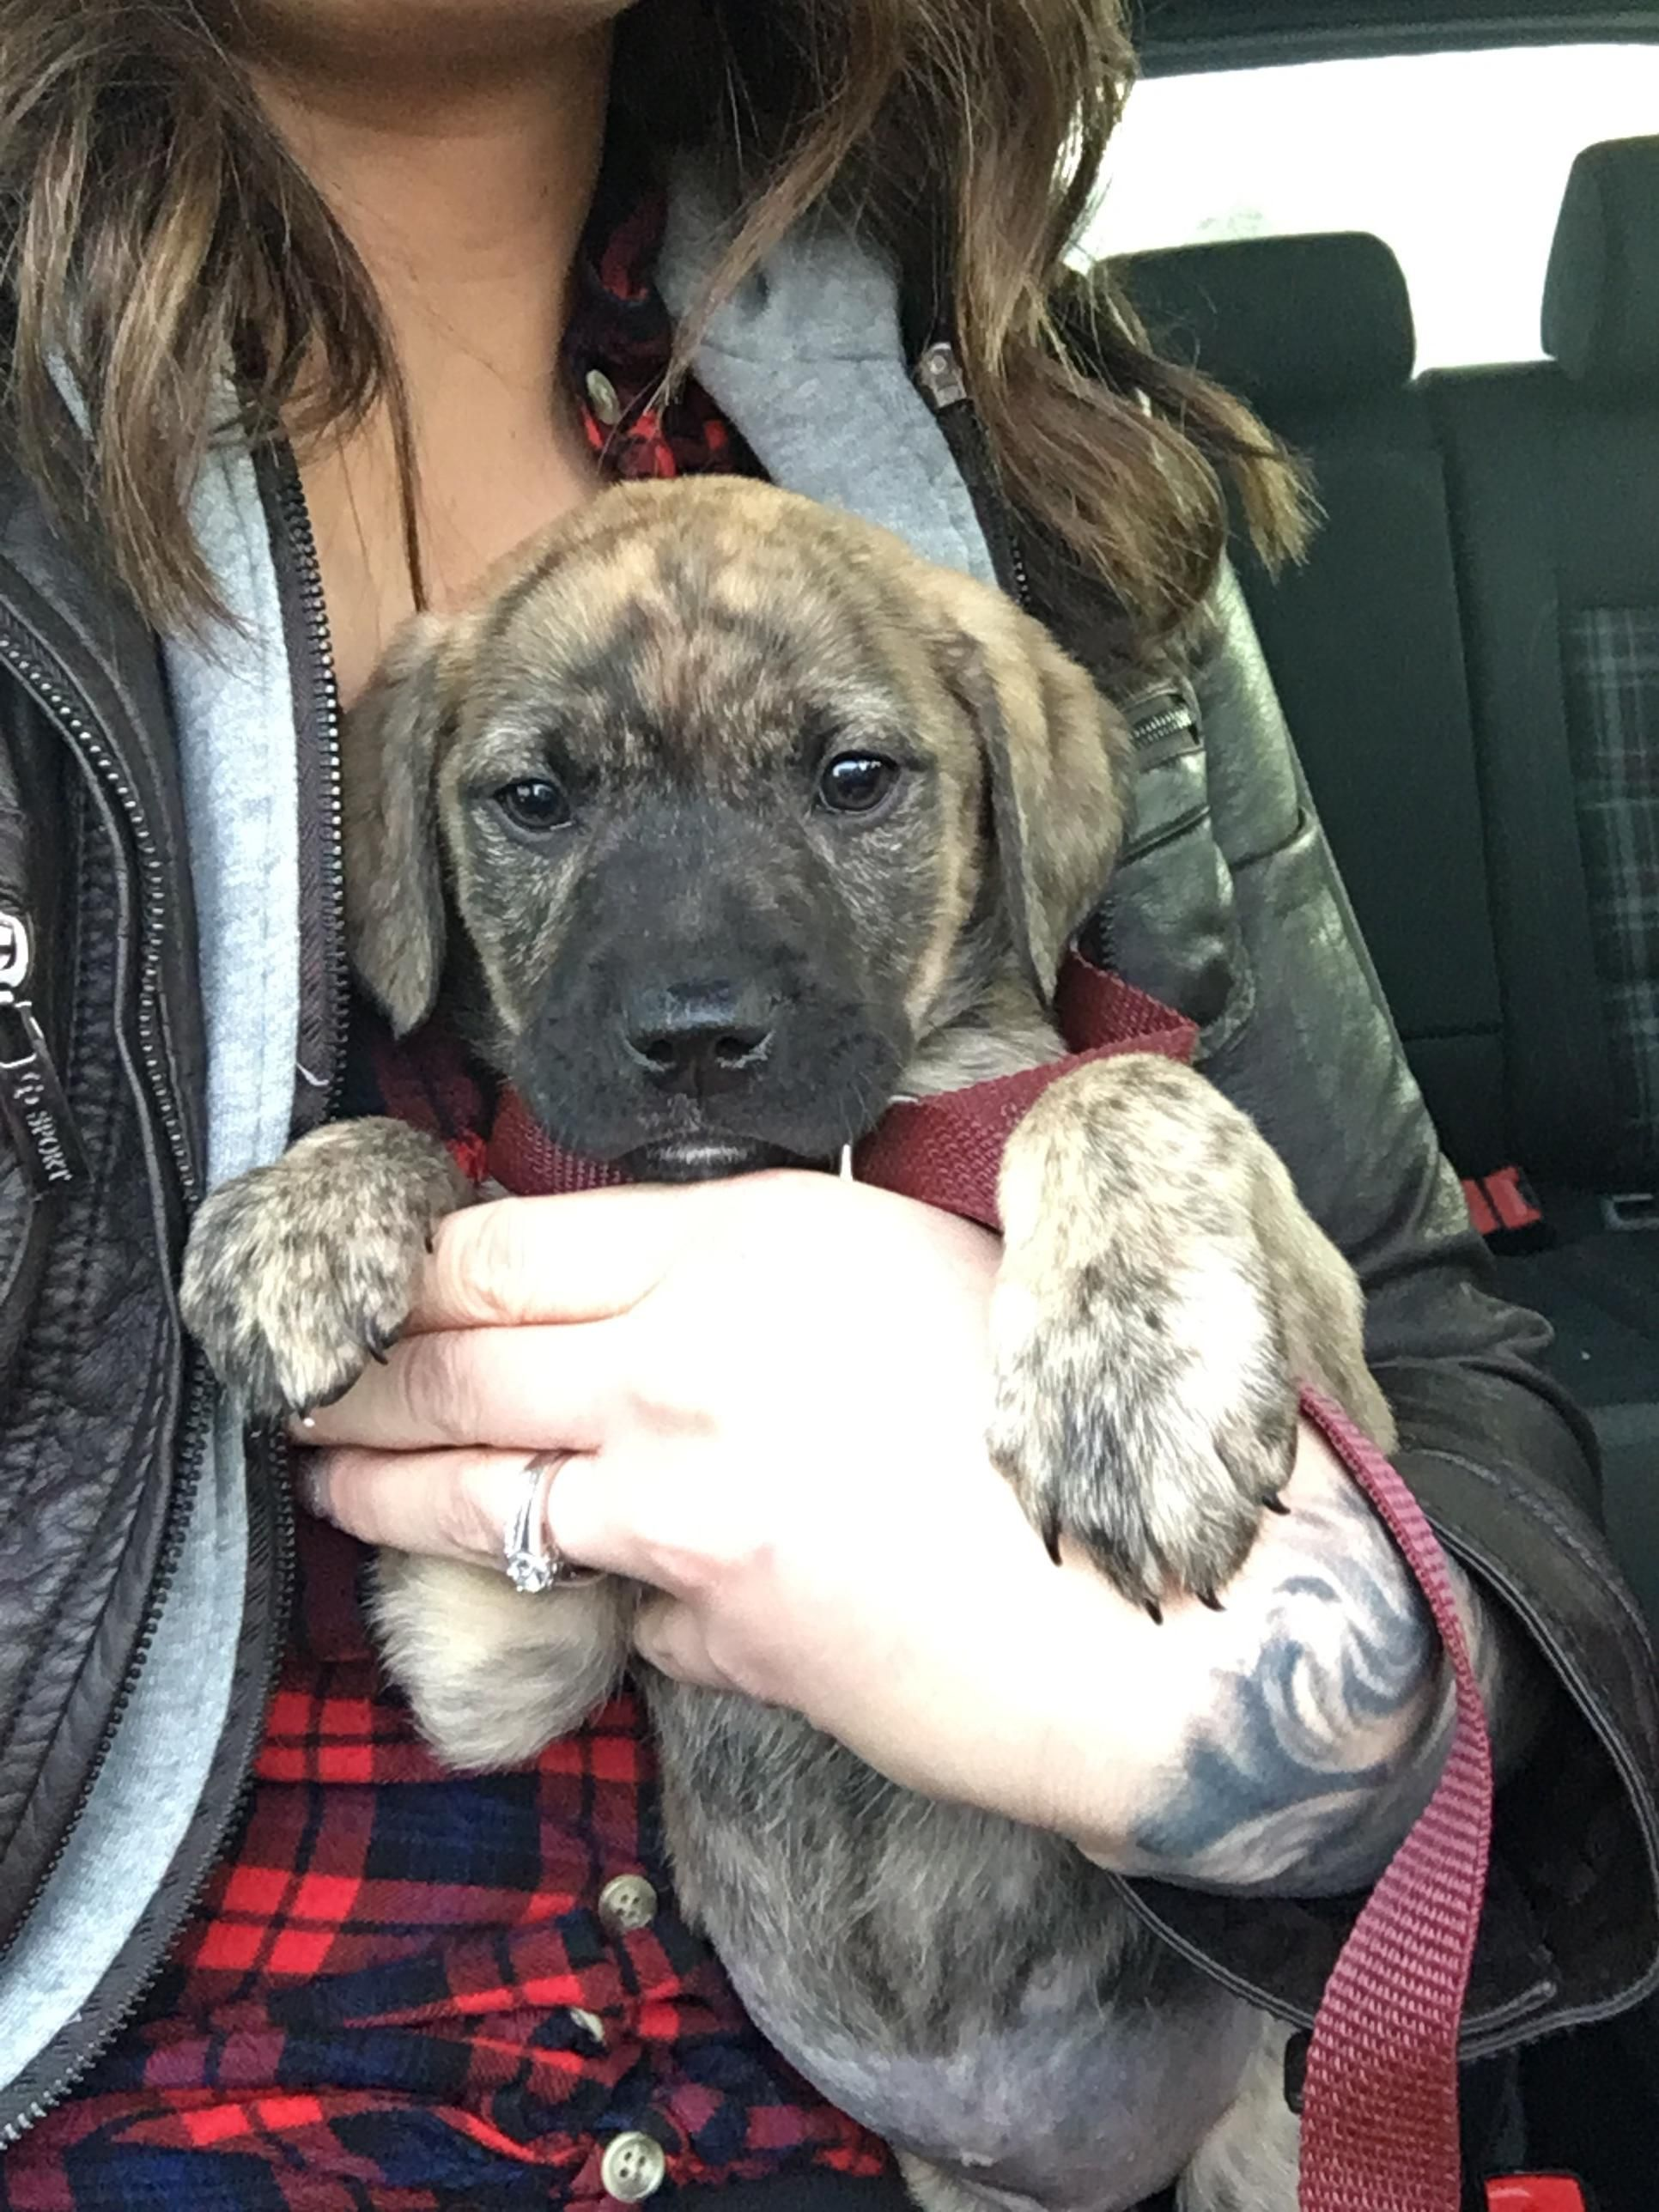 Adopted Our Brindle Baby Nova This Past Christmas Shes A Boxer Lab Mix Https Ift Tt 2j3qelc Lab Mix Puppies Boxer Lab Mixes Boxer Lab Mix Puppies